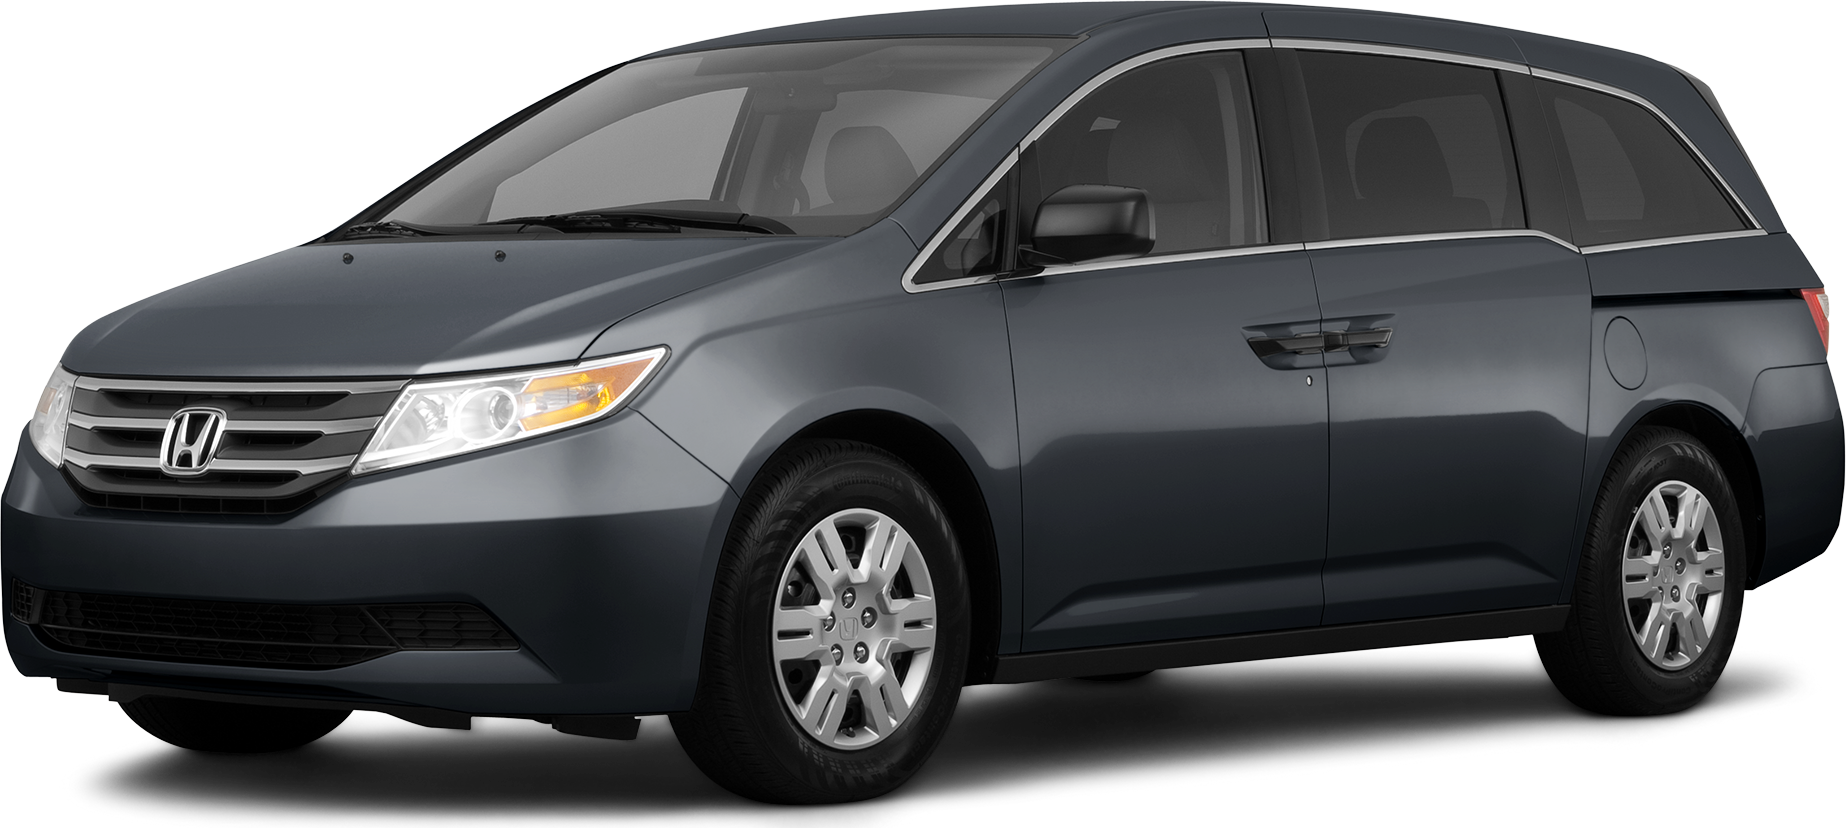 32 Used Honda Odyssey For Sale By Owner Craigslist